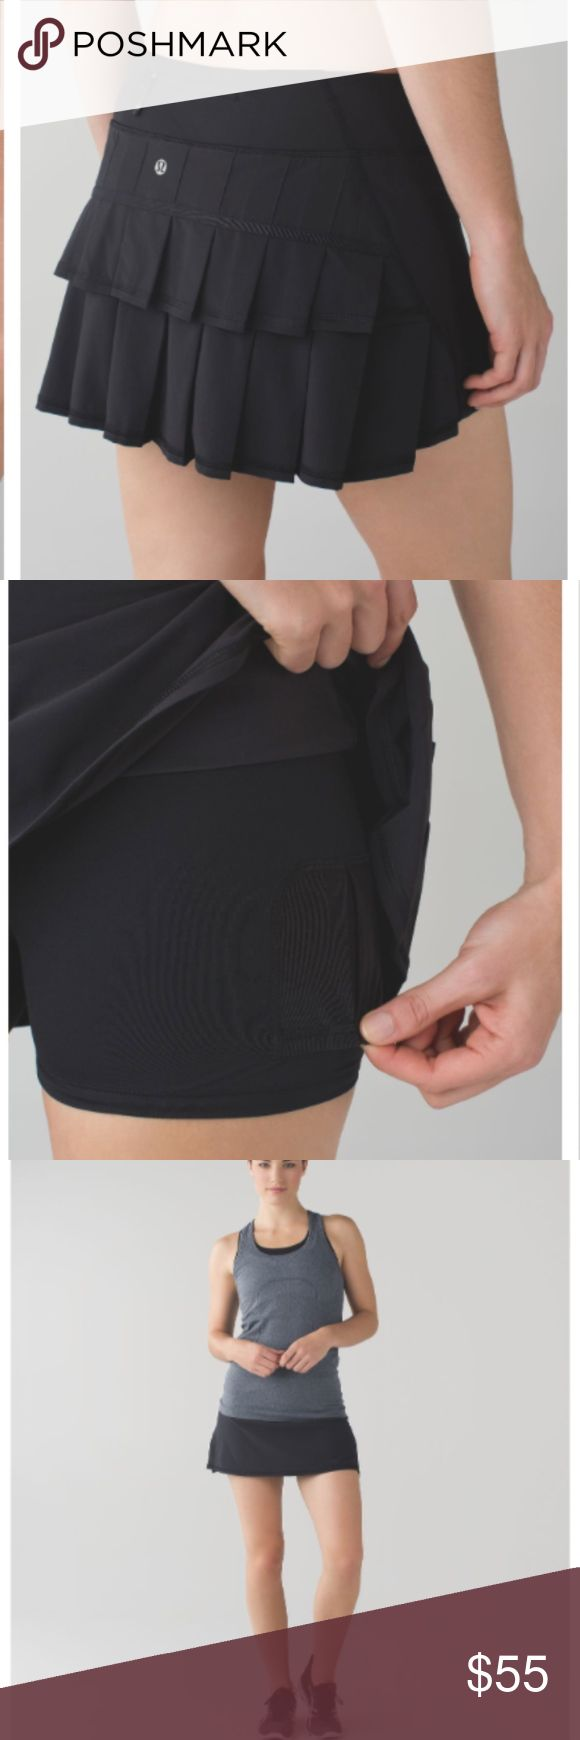 Lululemon Run: Black Pace Setter Skirt Pockets galore: secure zipper pocket on back waistband for cards and keys; two gel pockets for mid-race snacking, venting at the back of the skirt adds breathability and the pleats allow room to move, built-in shorts with sticky elastic on the hem limits stops your shorts from rolling up mid-run. Seriously great condition! Would trade for a size 10, only selling because its too big on me lululemon athletica Skirts